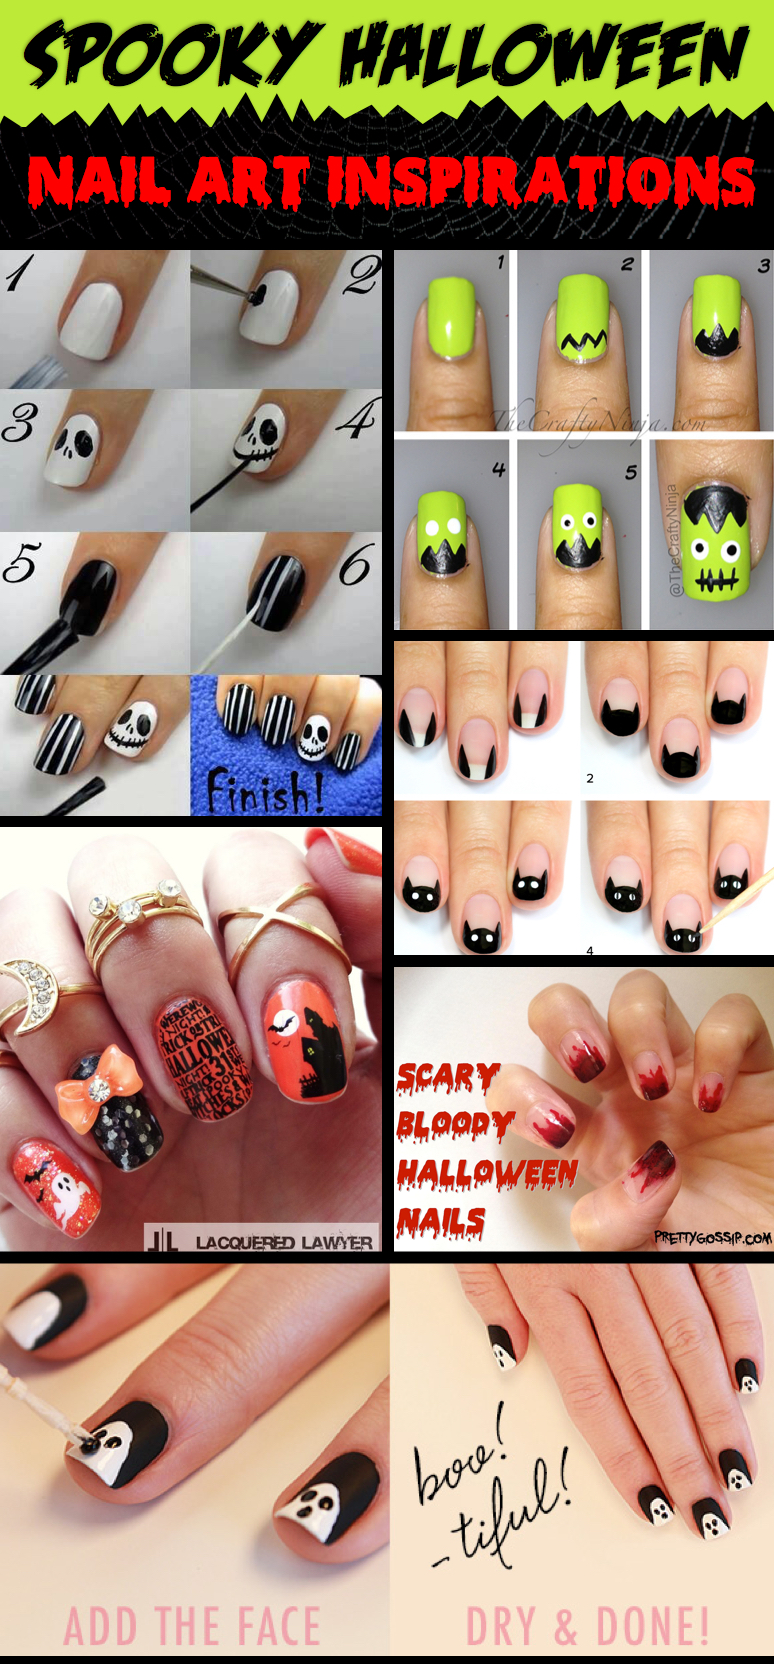 Fashion style Nail Frightened art ideas for halloween for girls